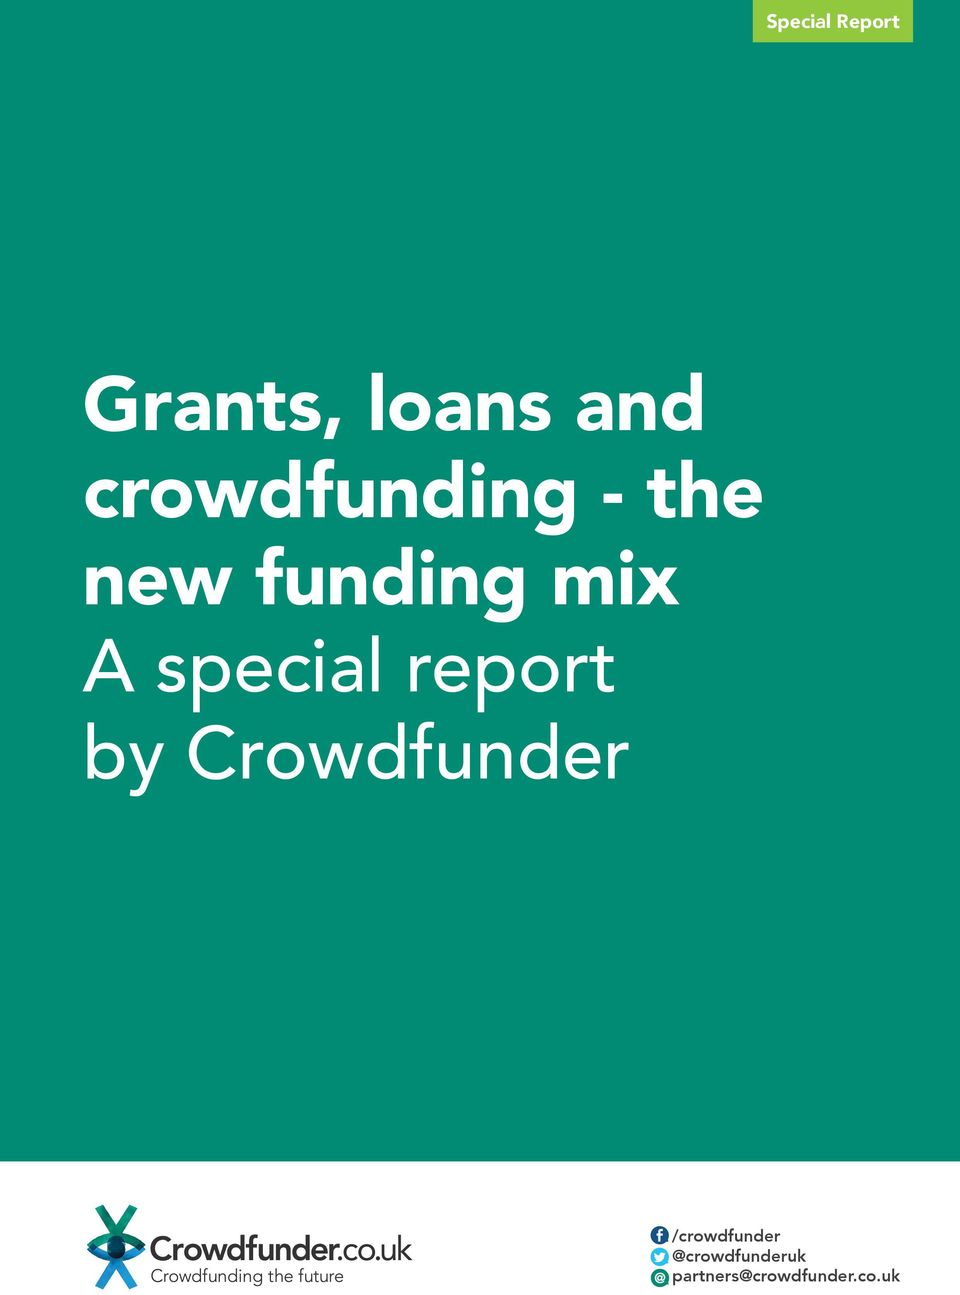 special report by Crowdfunder